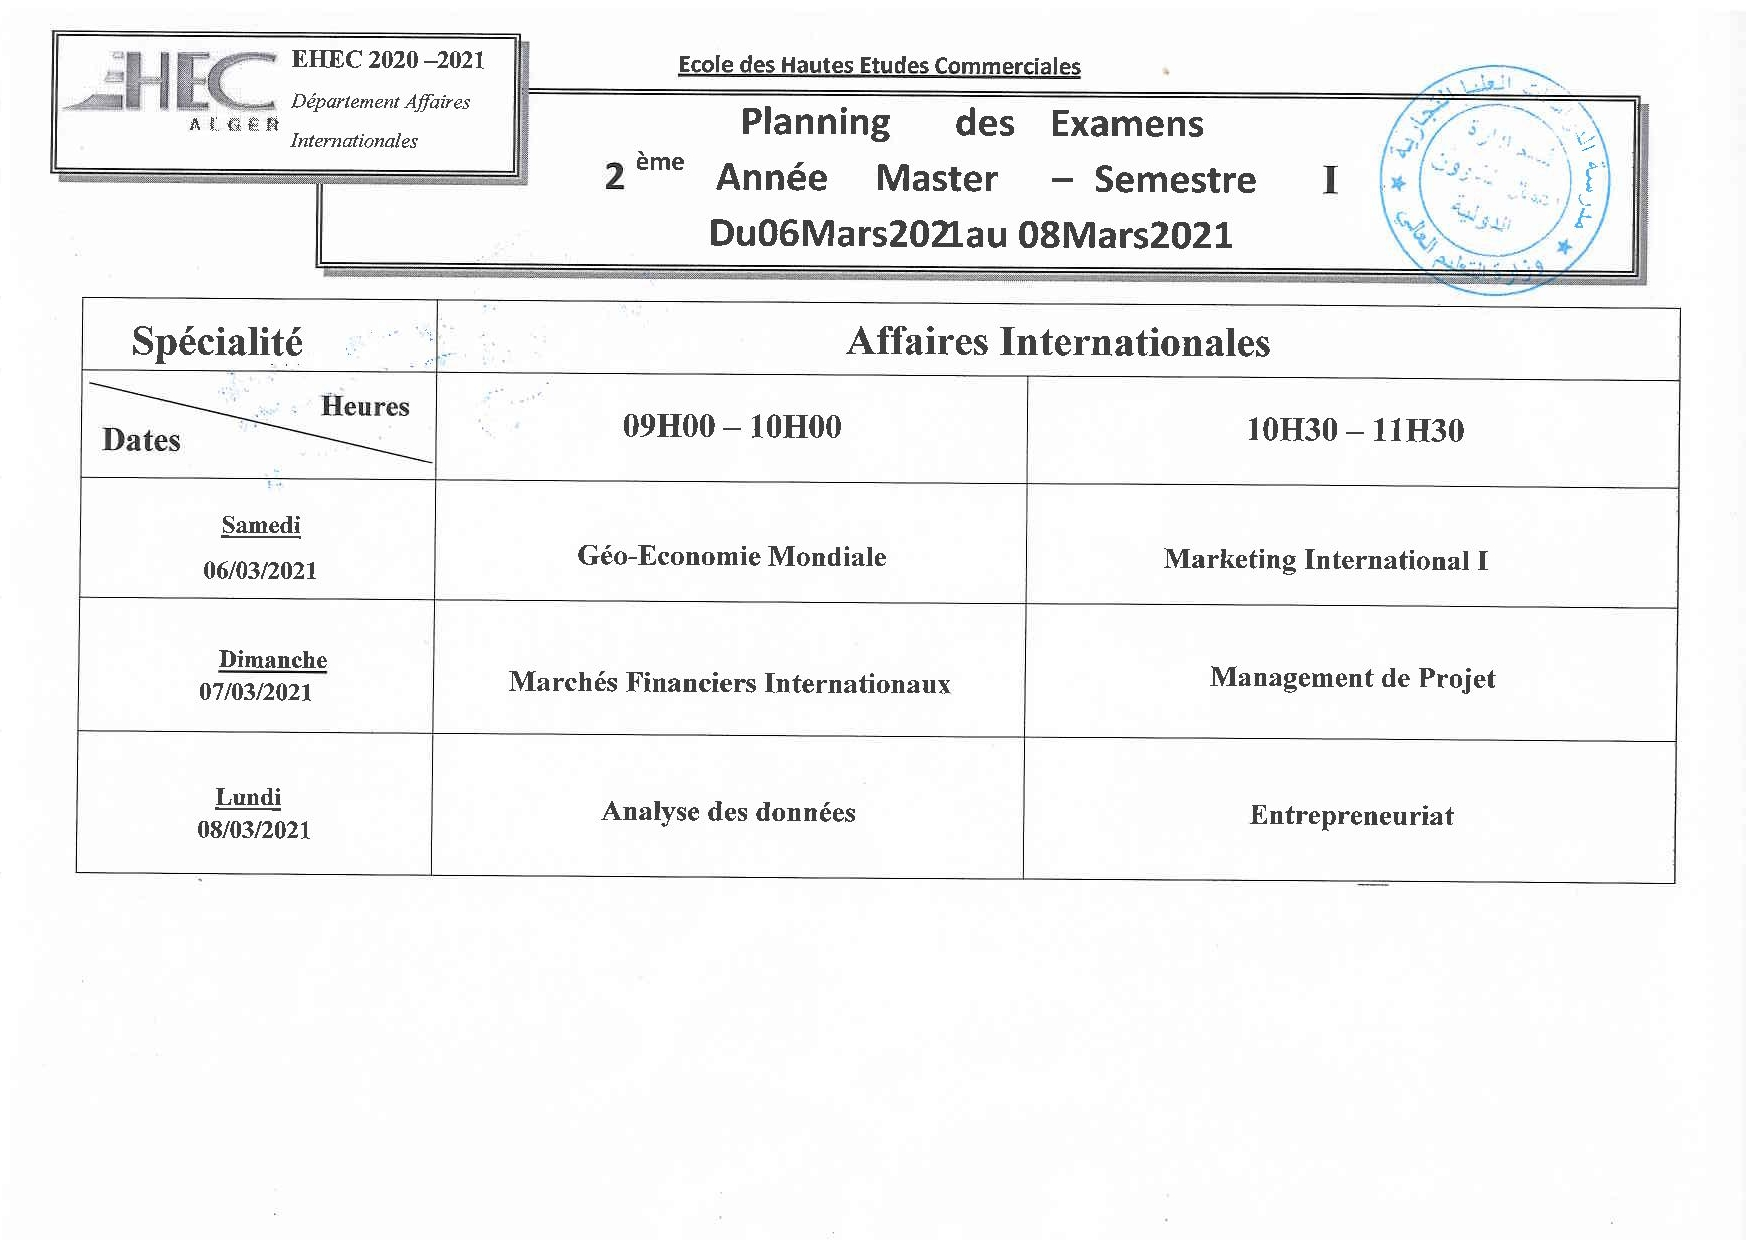 Exam timetable for the 2nd year master cycle students of The department of international affairs S1